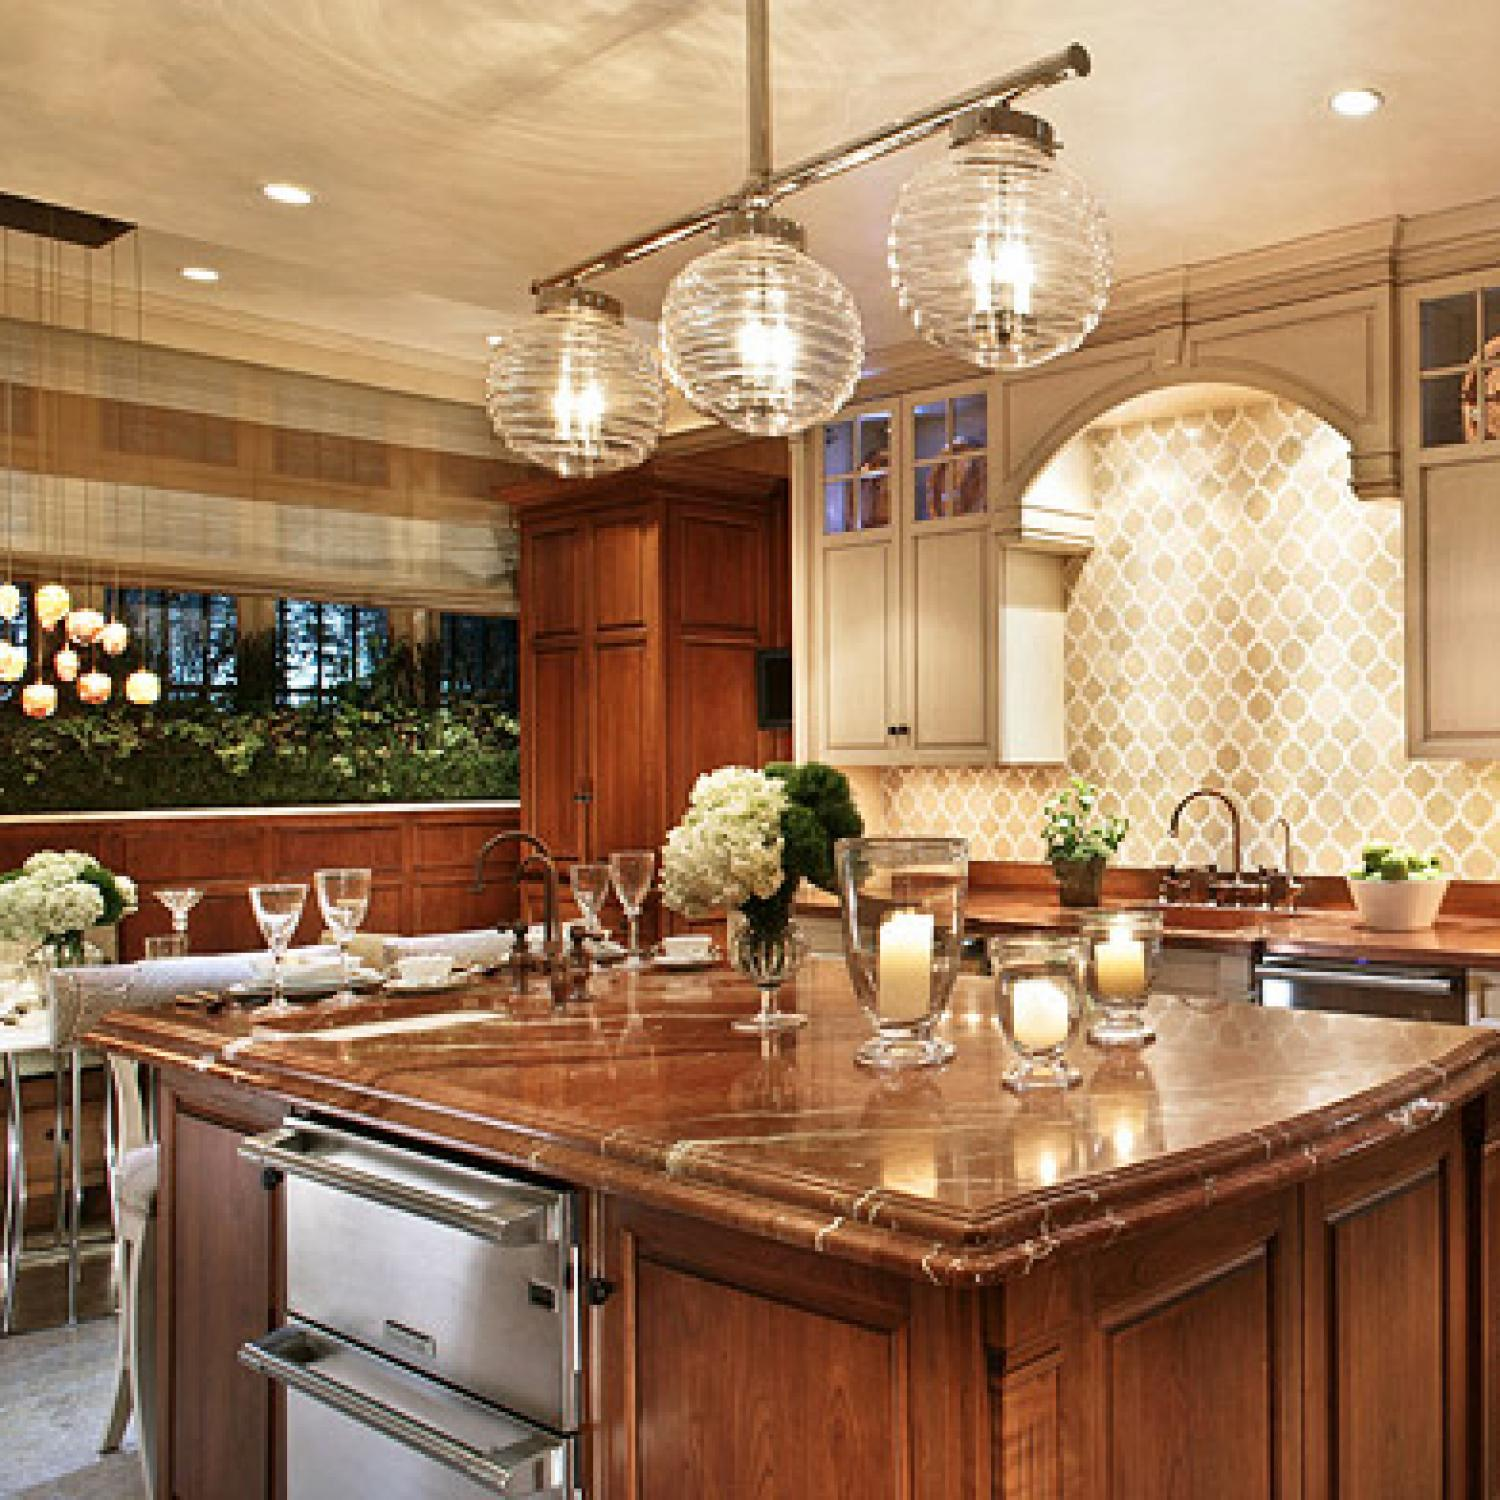 Kitchen Pictures With Islands: Welcoming, Intimate Showhouse Kitchen